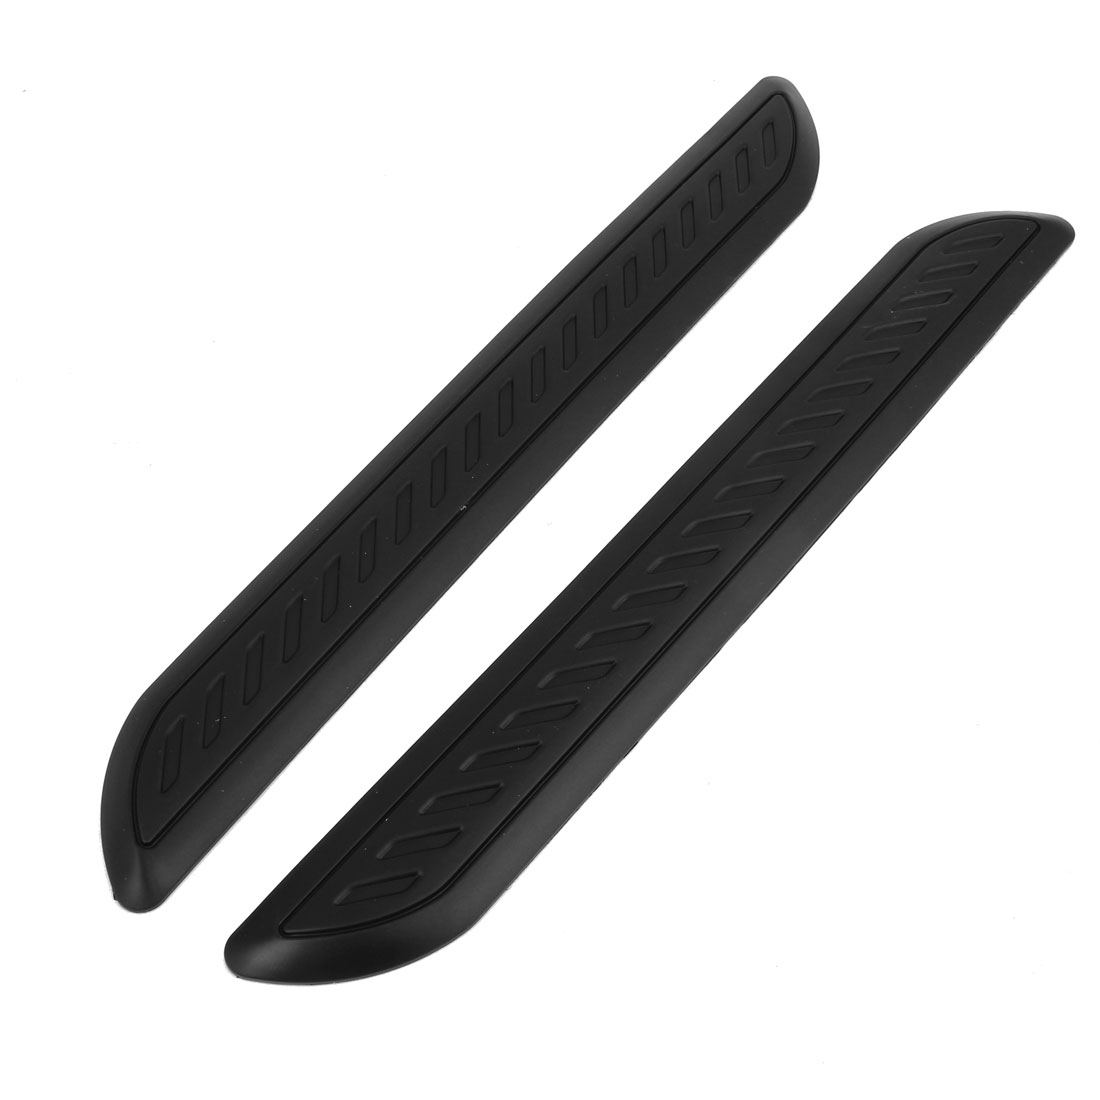 2 Pcs Black Rubber Adhesive Vehicle Car Edge Safety Bumper Guard Protector 41cm Long